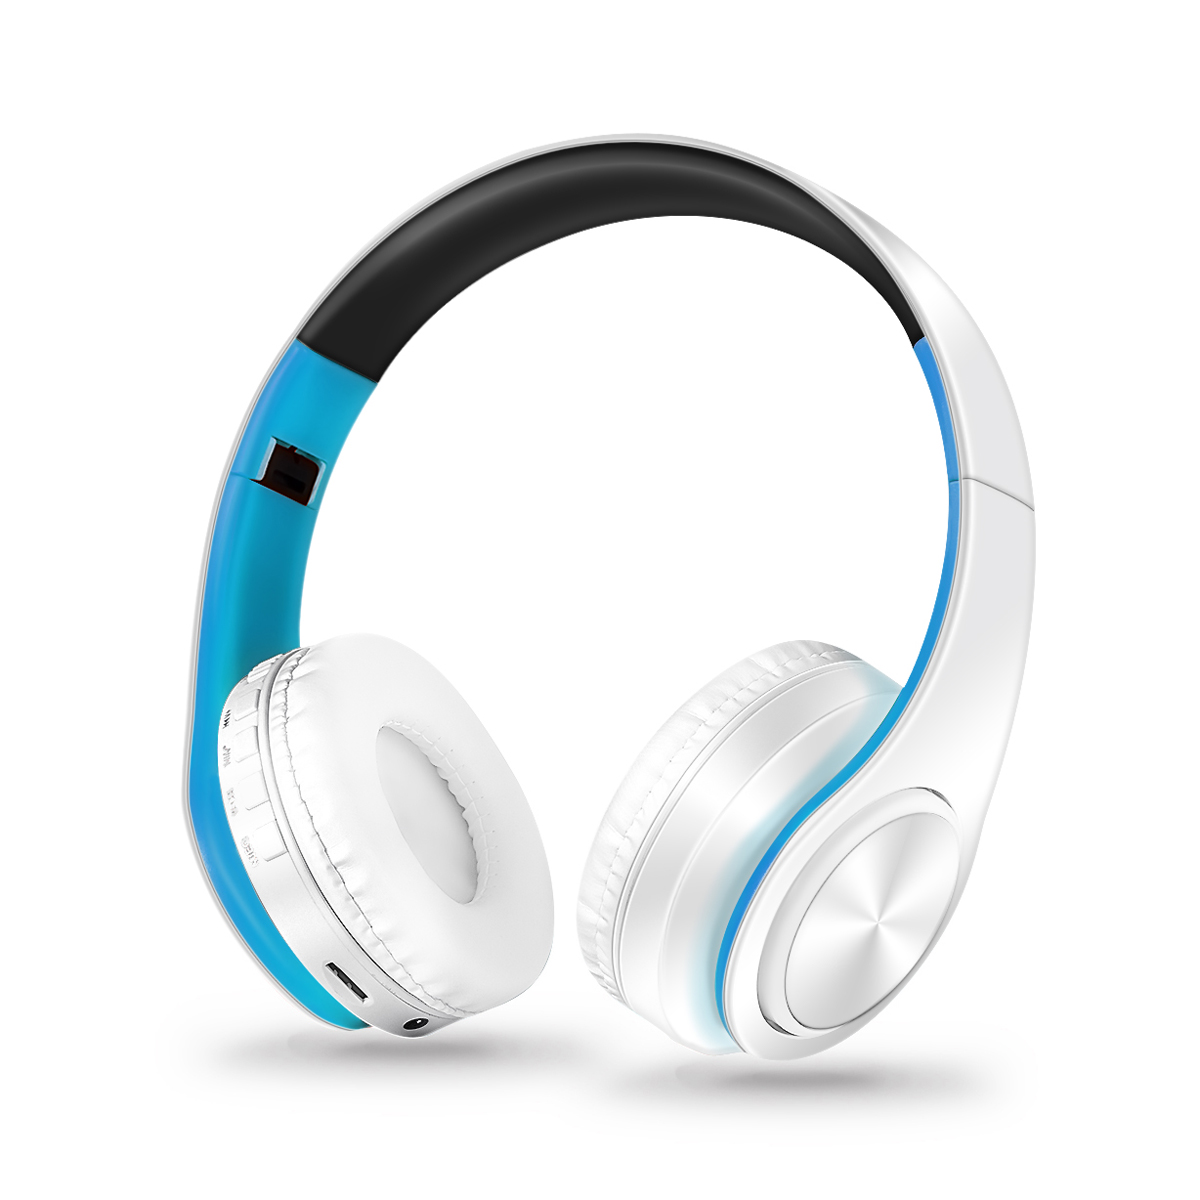 Foldable Noise Cancelling Wireless/Wired Hifi Stereo Bass Bluetooth bluetooth headphones 4.0 Sport Game Headphone Headset Over Ear Mic & FM Radio TF  AUX for Iphone S amsung Ipad I